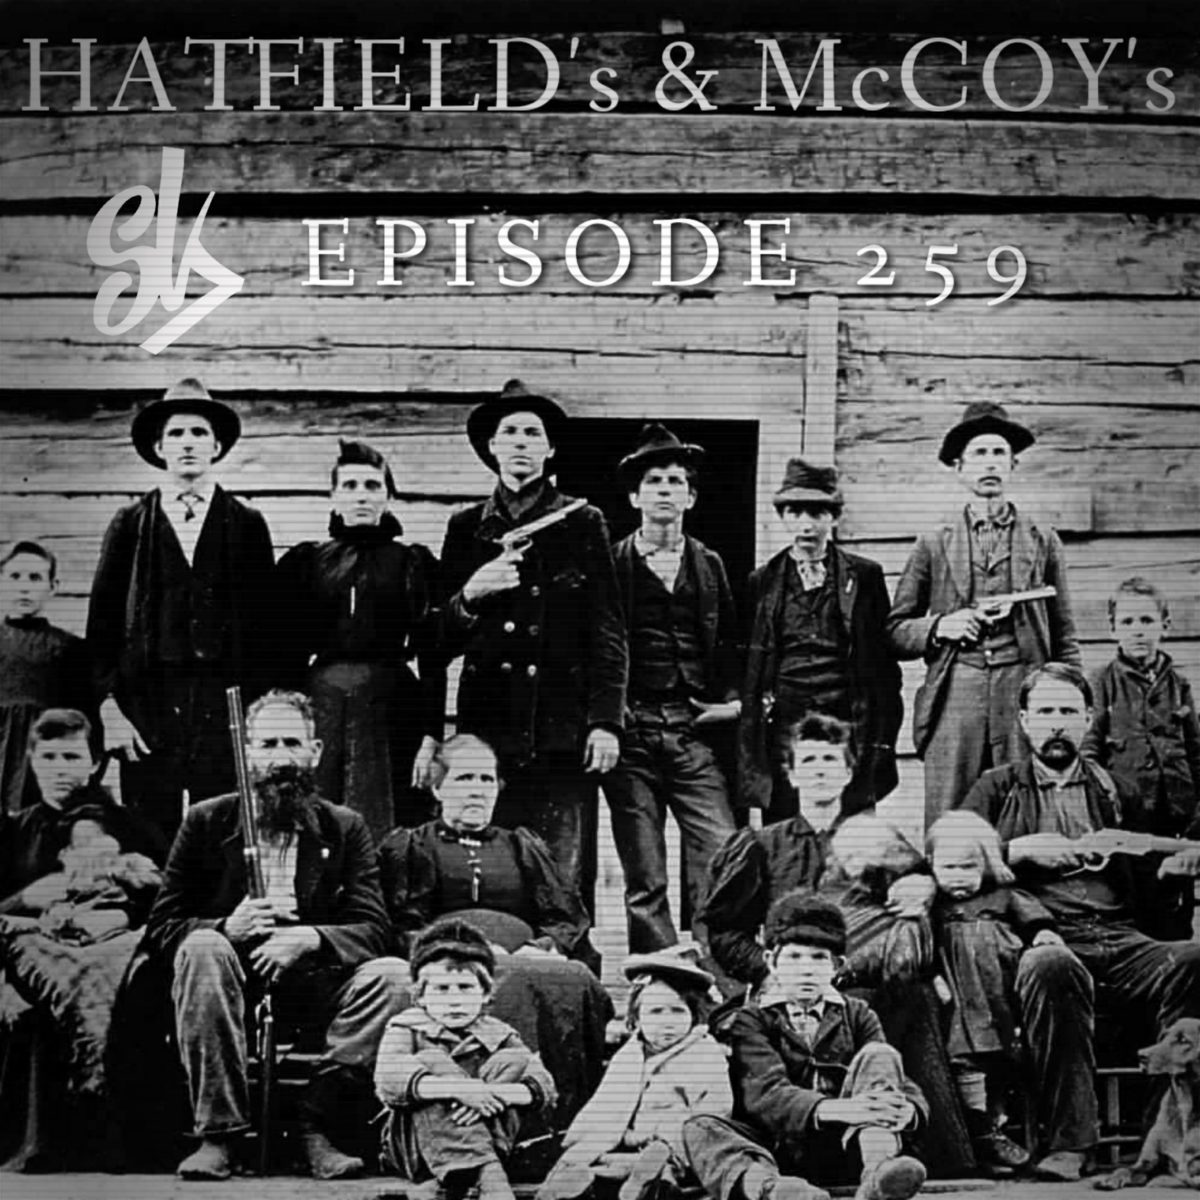 Episode 259 Hatfield And McCoy The Ultimate Family Feud